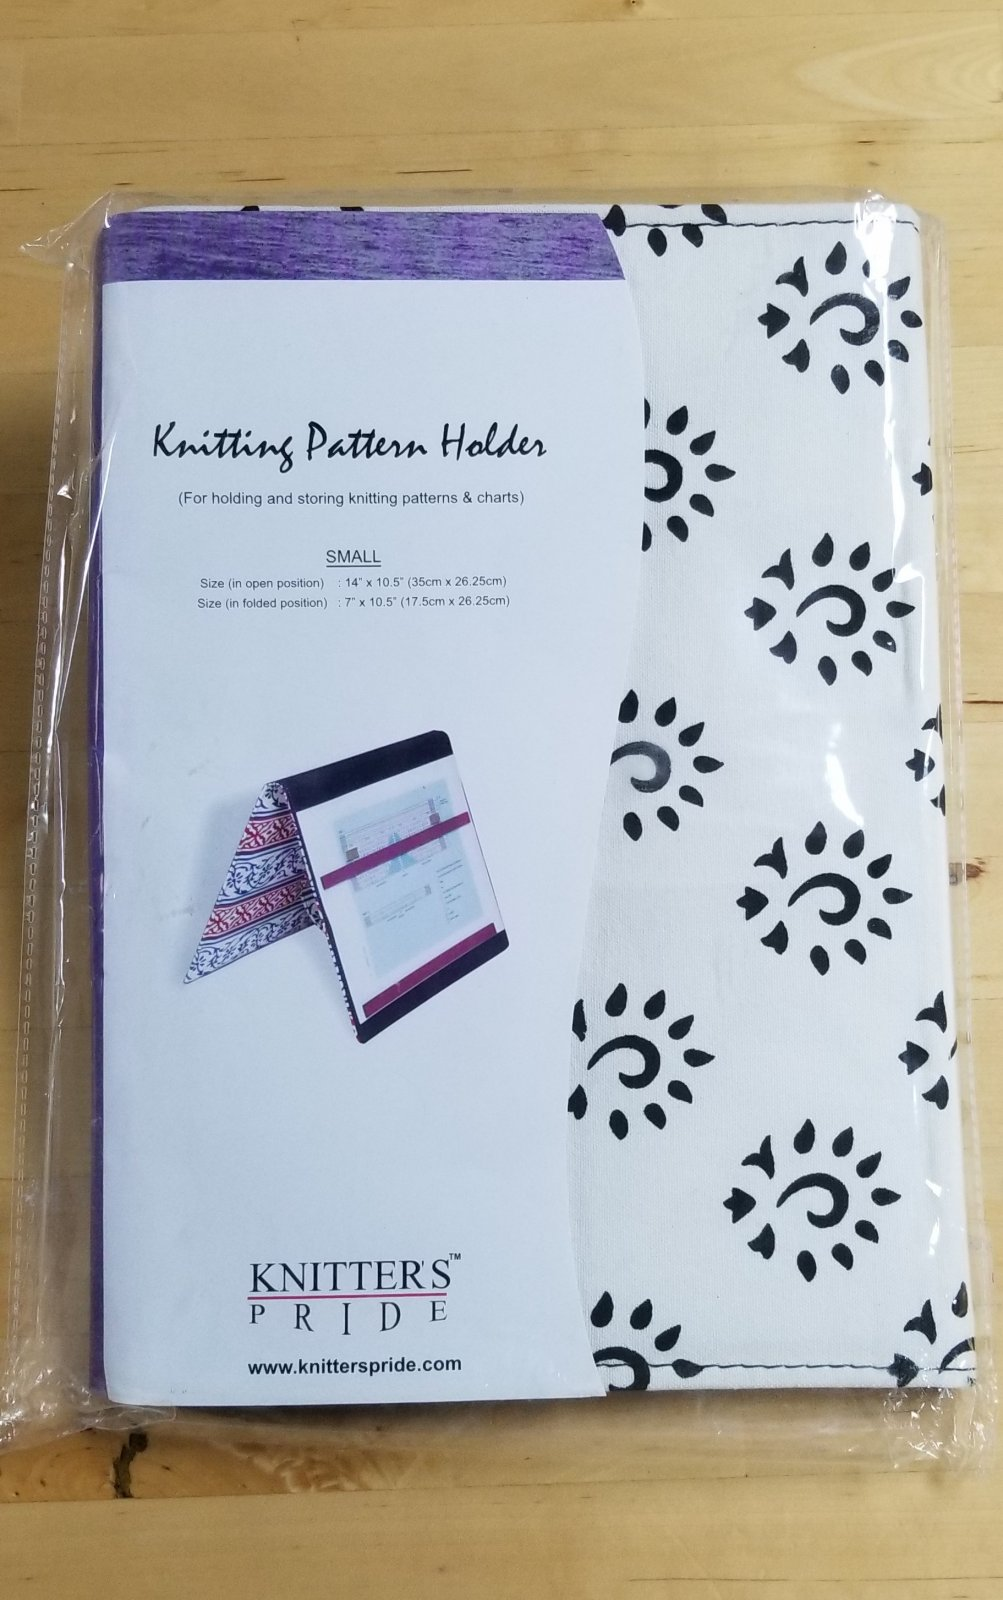 Knitting Pattern Holder